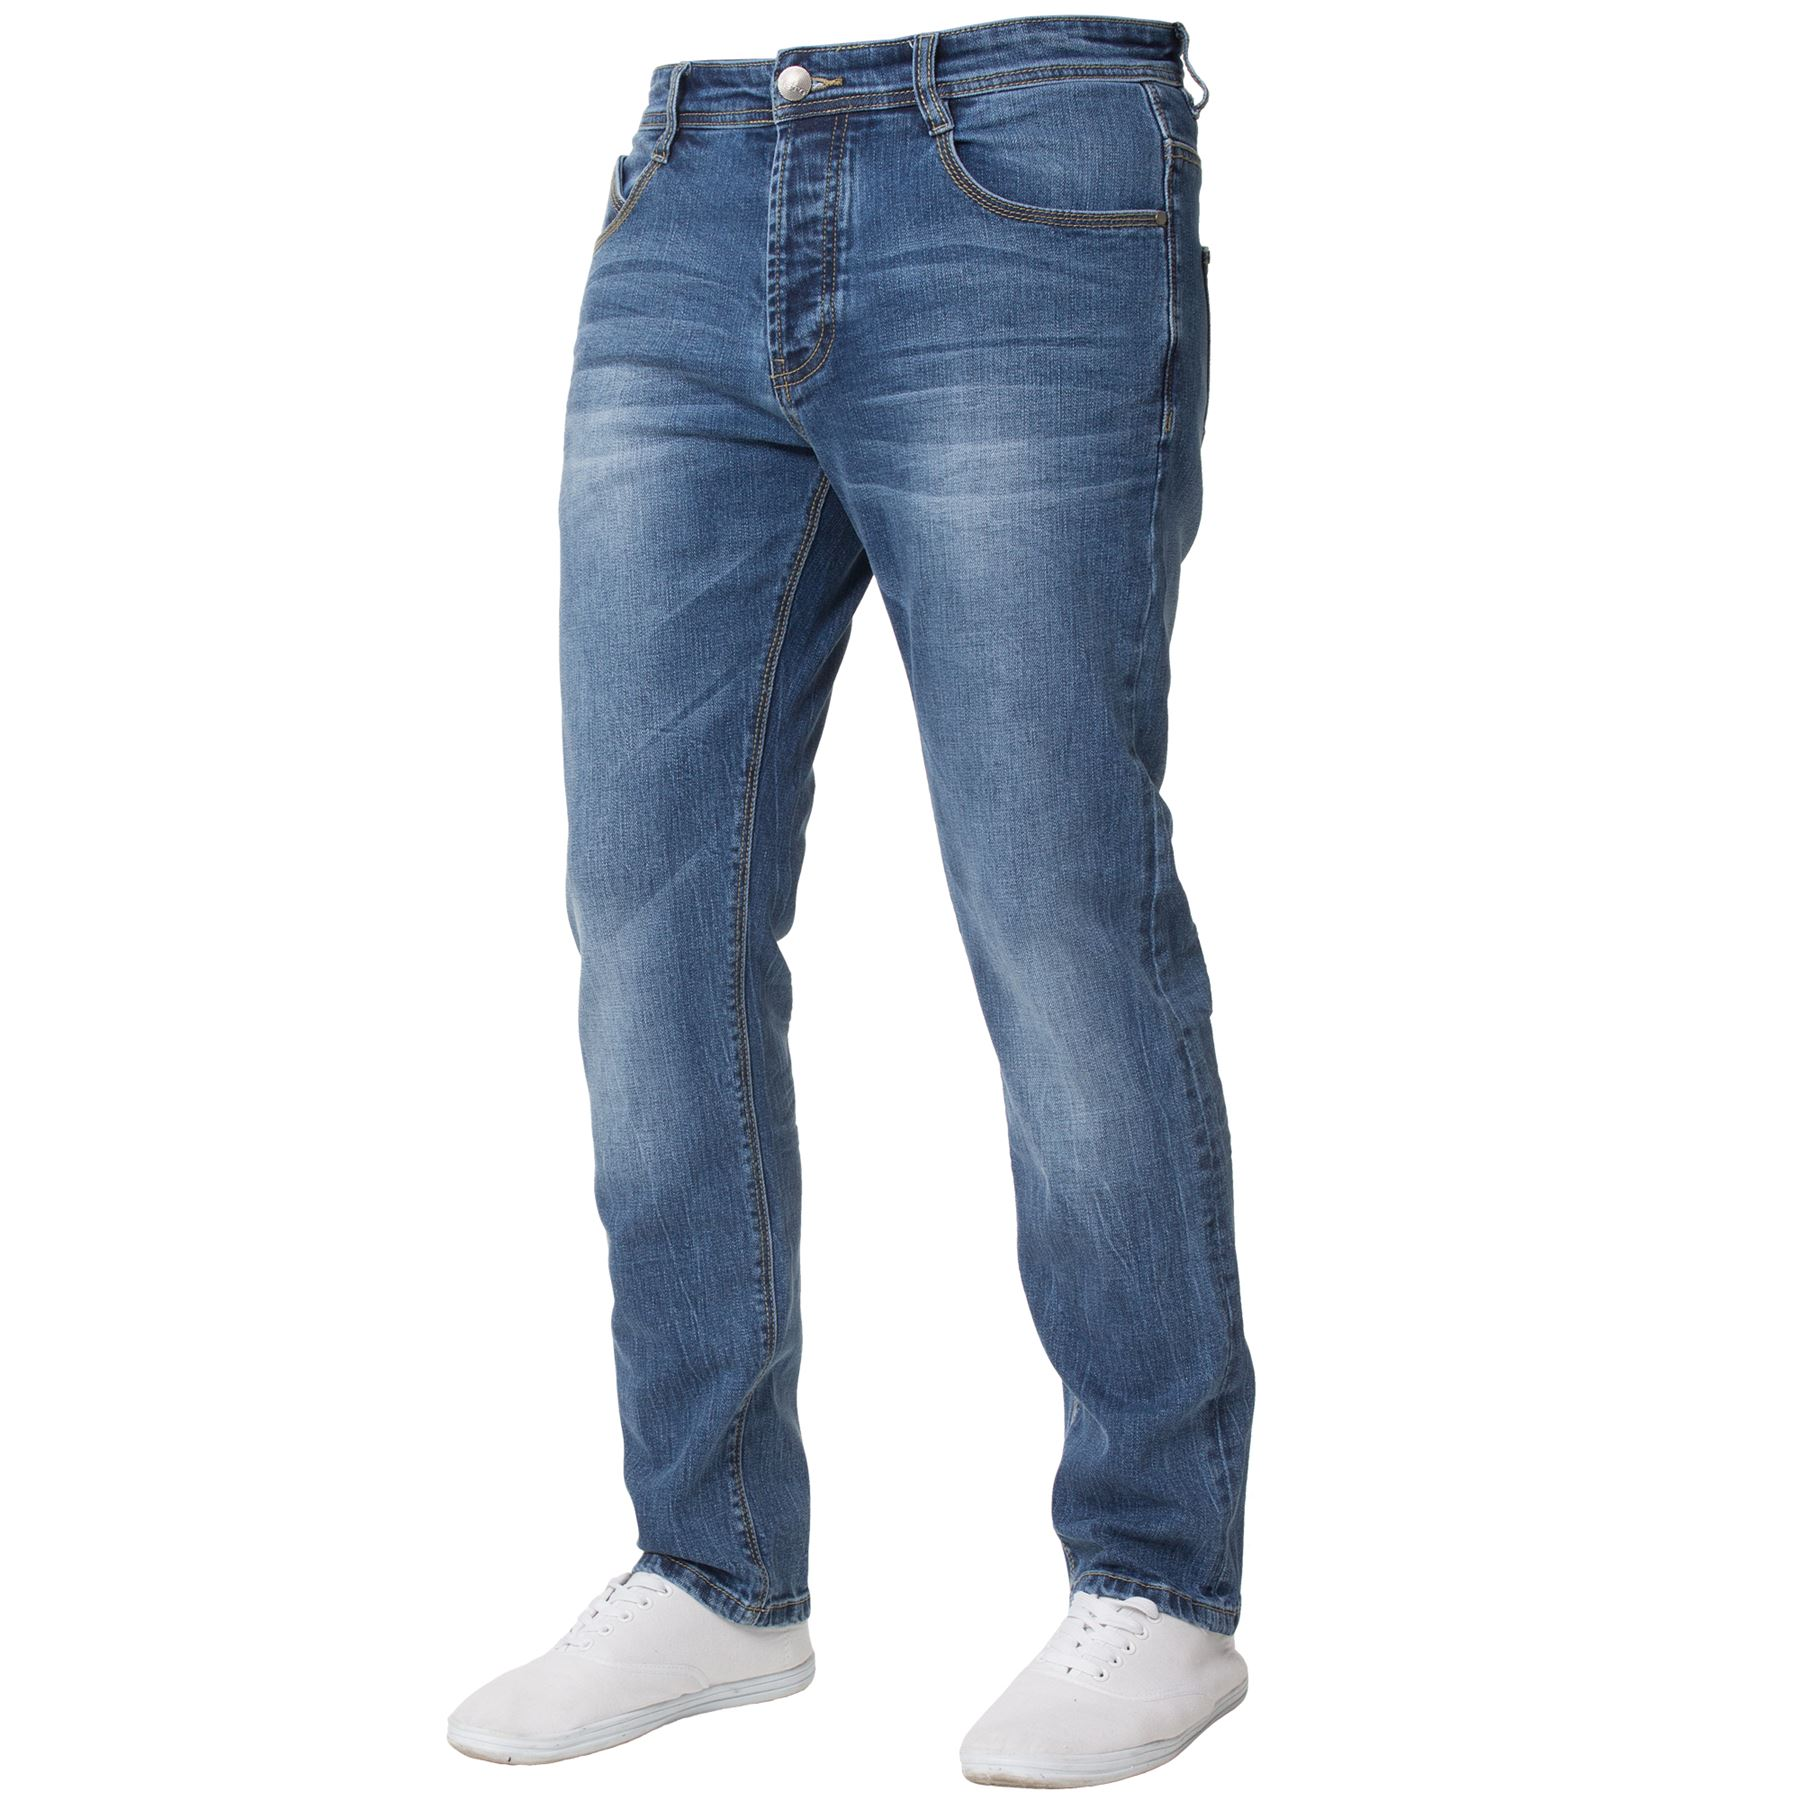 Eto-Designer-Mens-Tapered-Jeans-Slim-Fit-Stretch-Denim-Trouser-Pants-All-Waists thumbnail 3